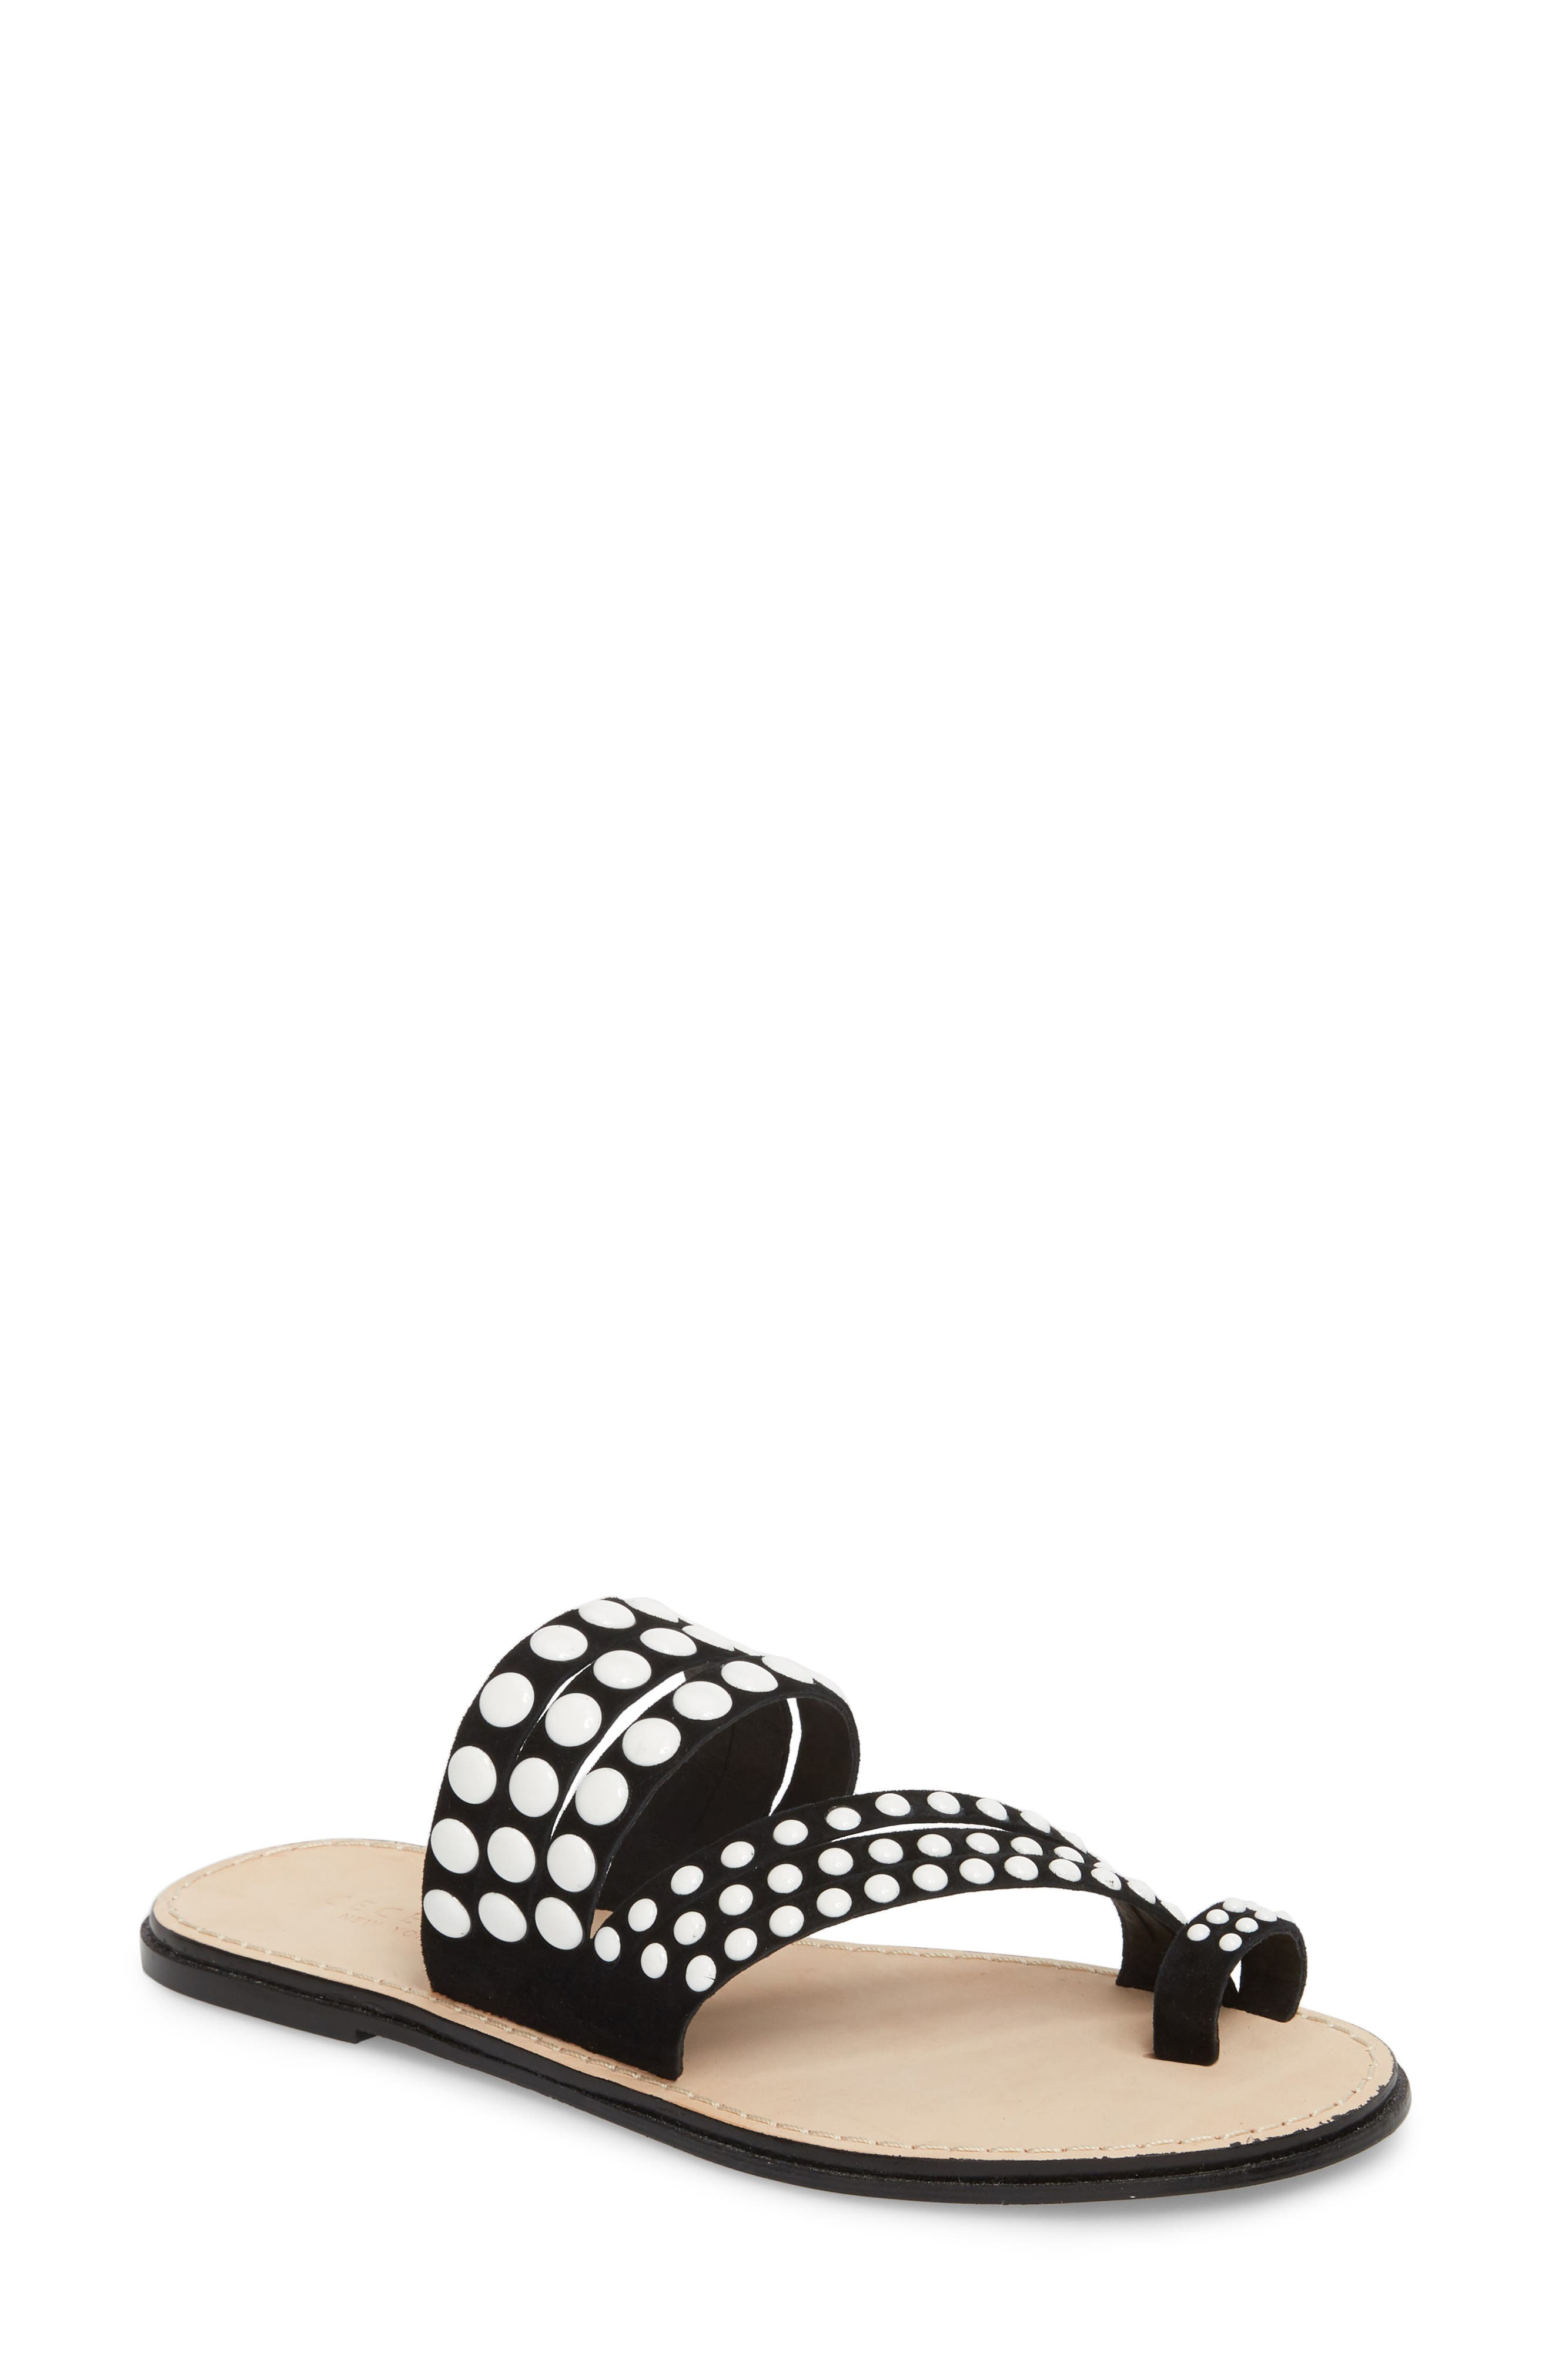 Pezz Studded Sandal,                             Main thumbnail 1, color,                             Black Suede